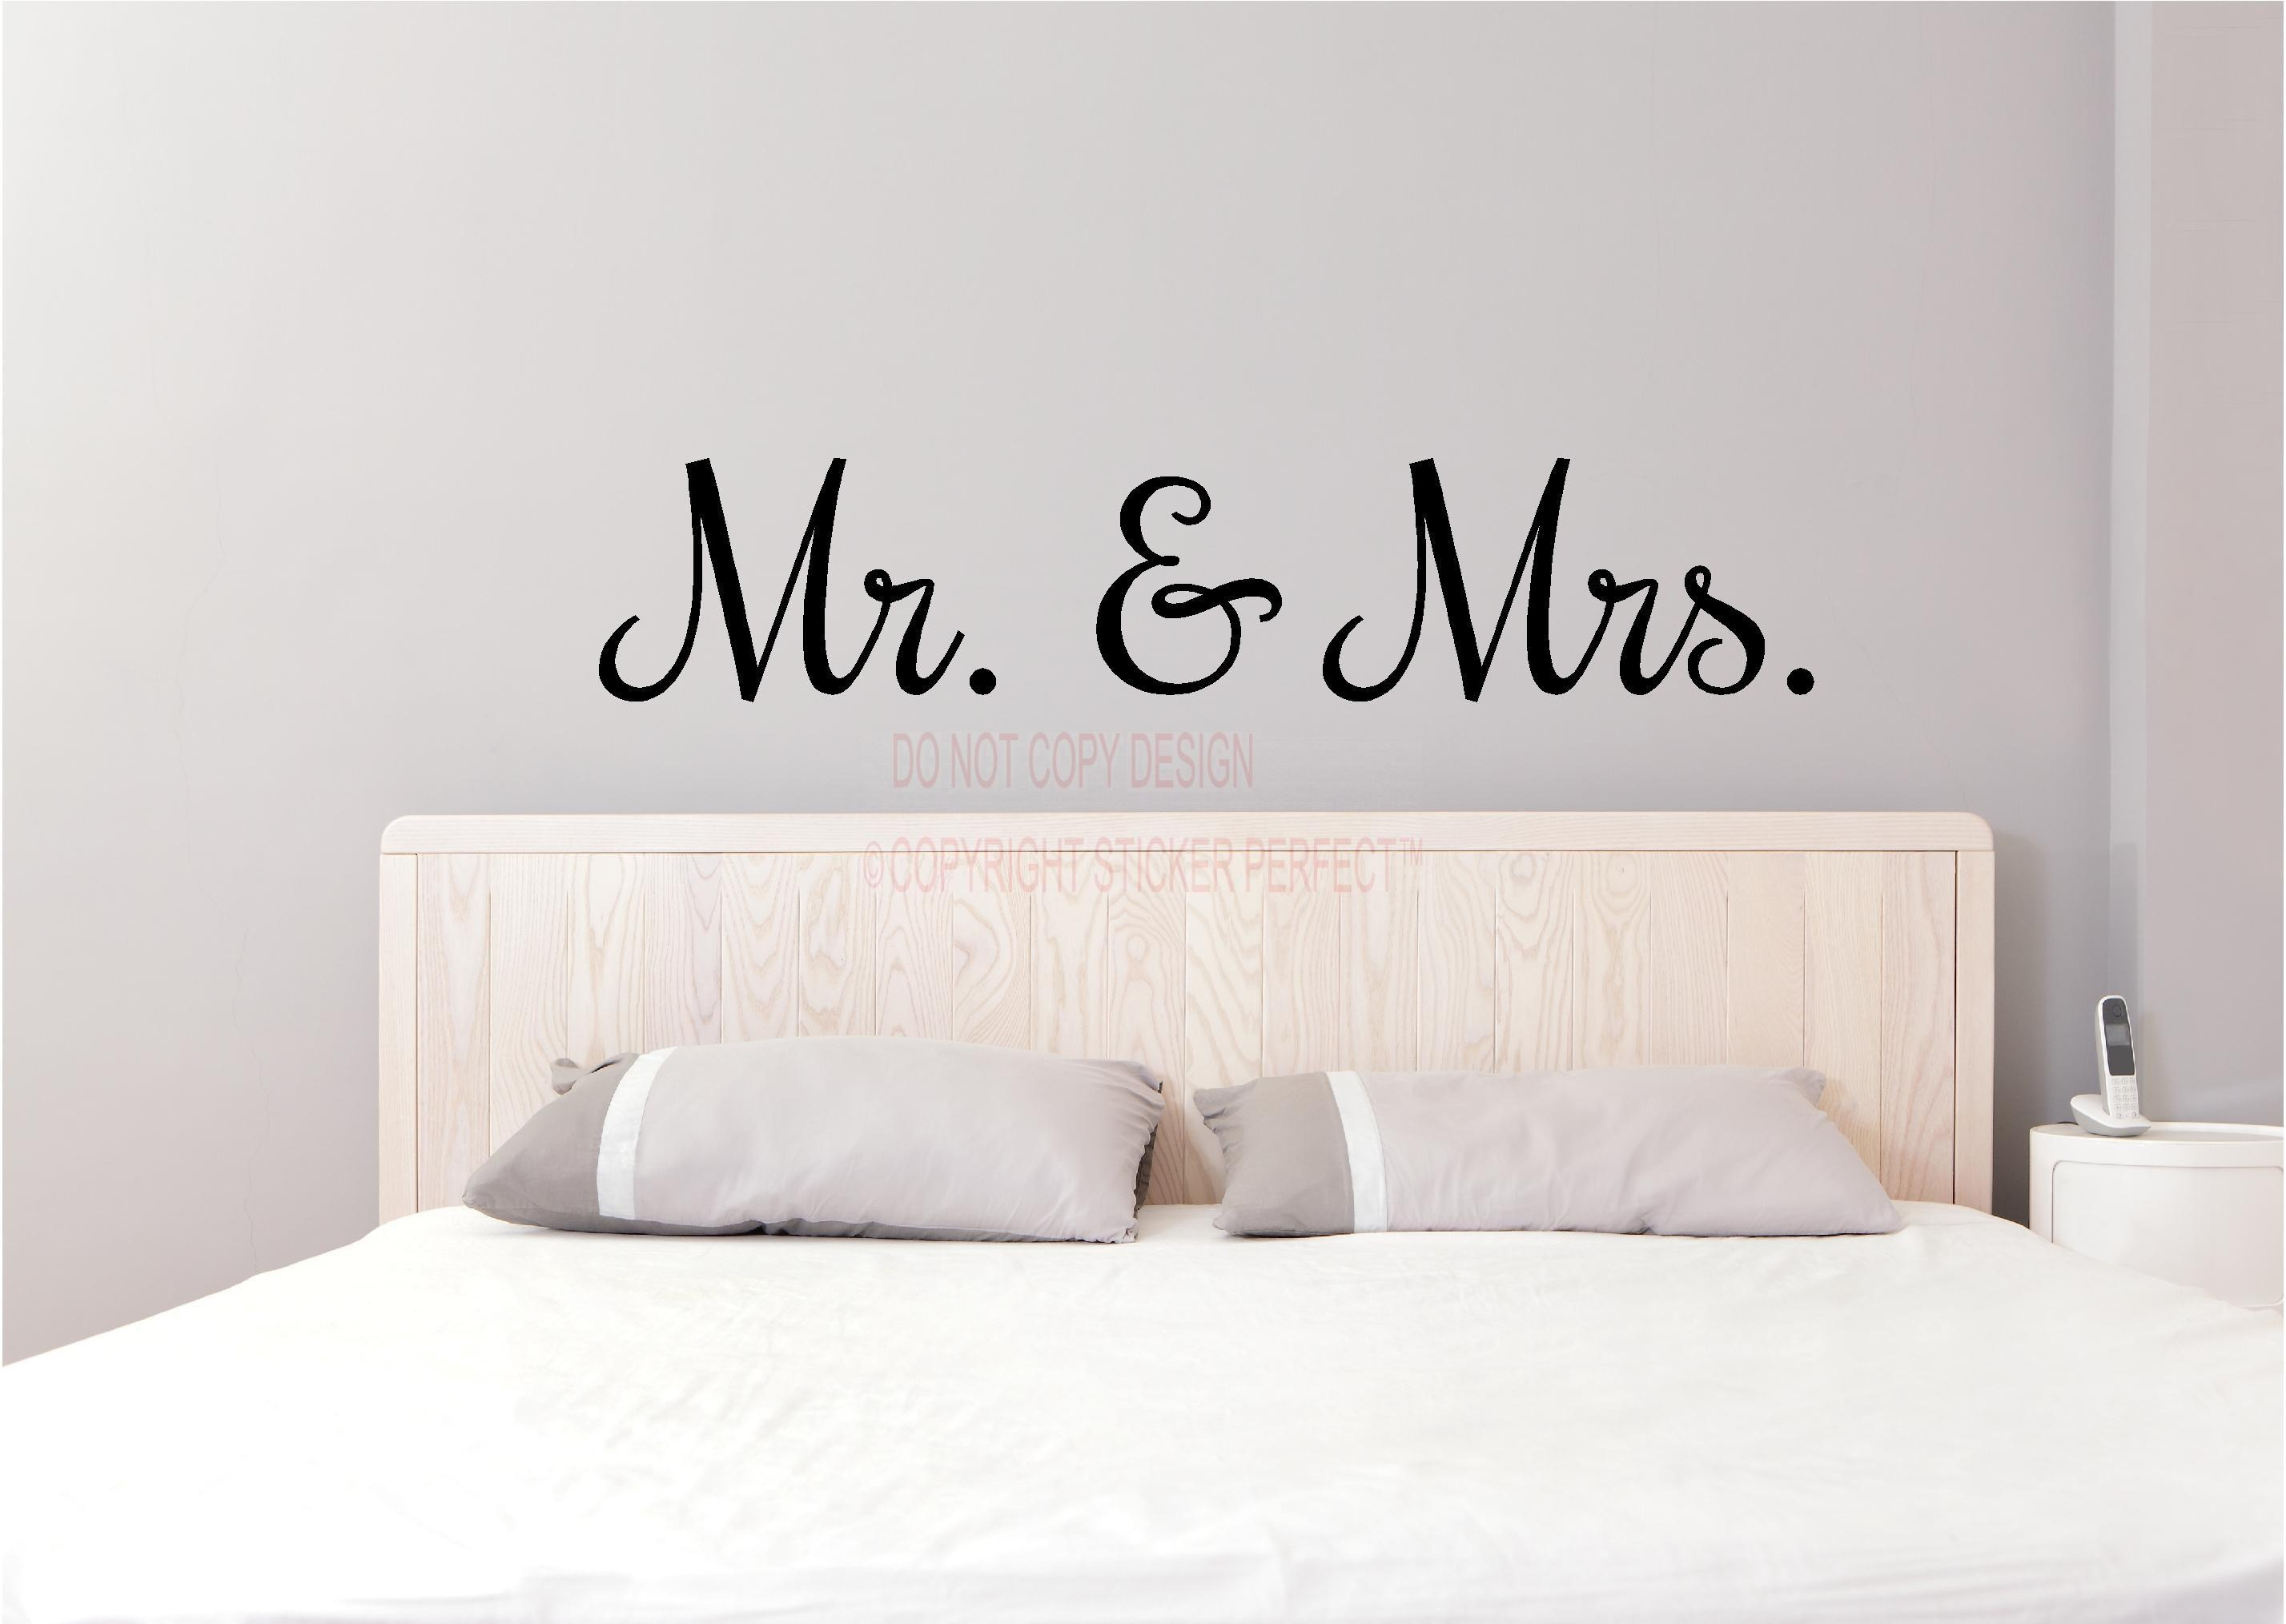 Mr And Mrs Bedroom Headboard Uplifting Home Decor Inspirational With Mr And Mrs Wall Art (View 15 of 20)